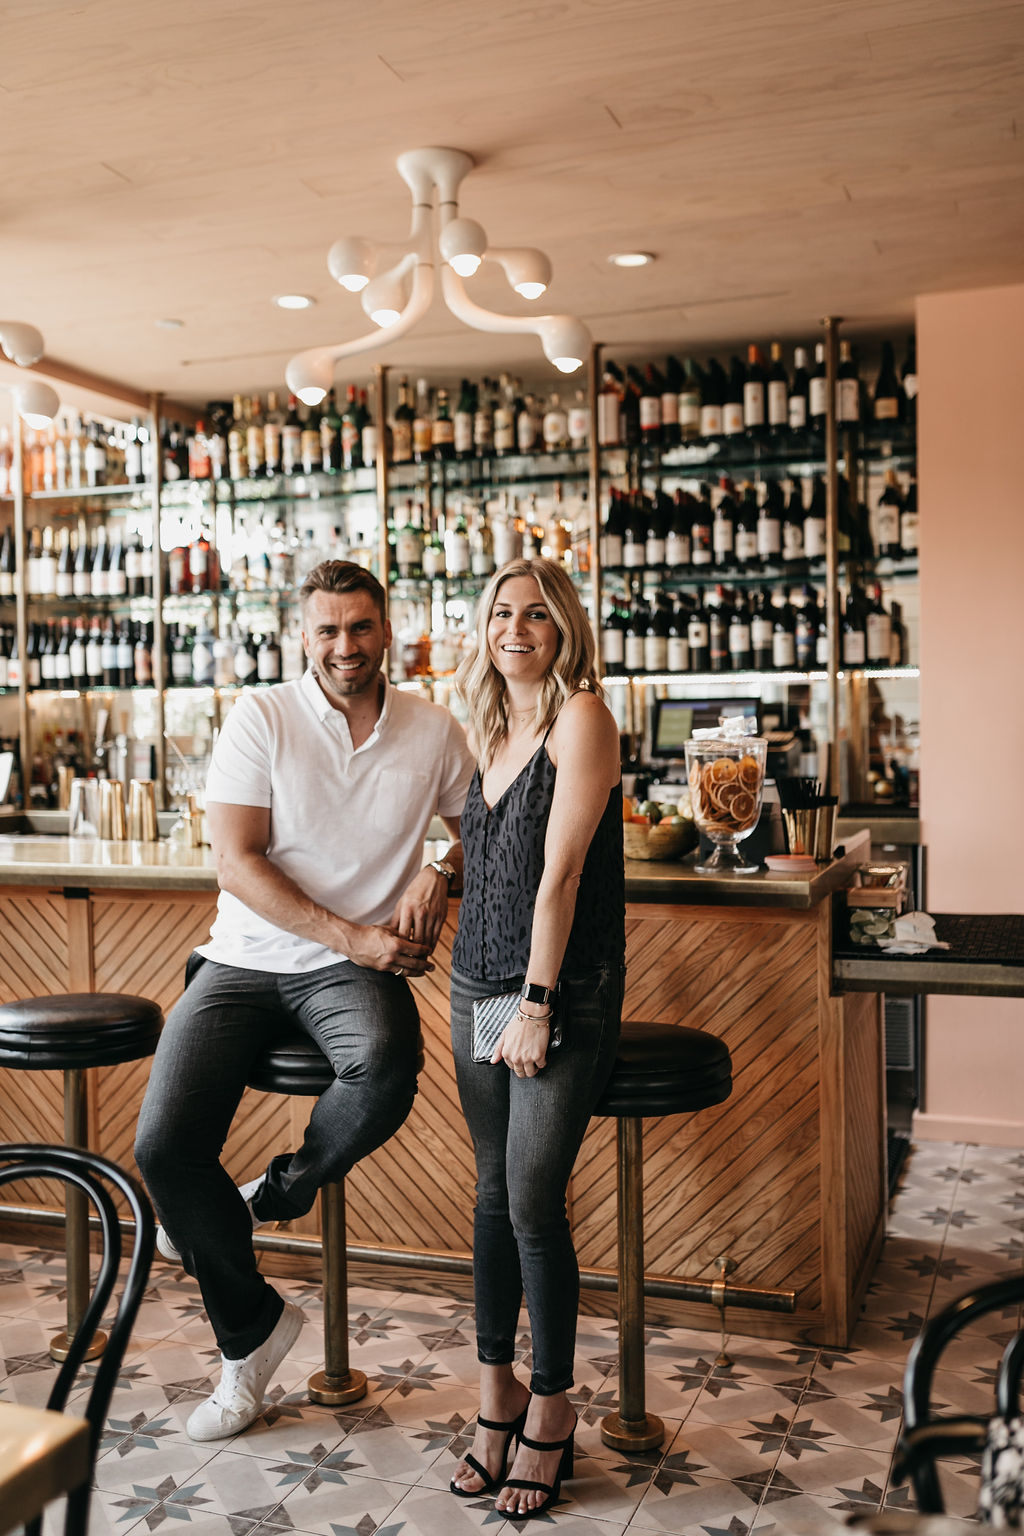 dating app gossip at a bar with two humans